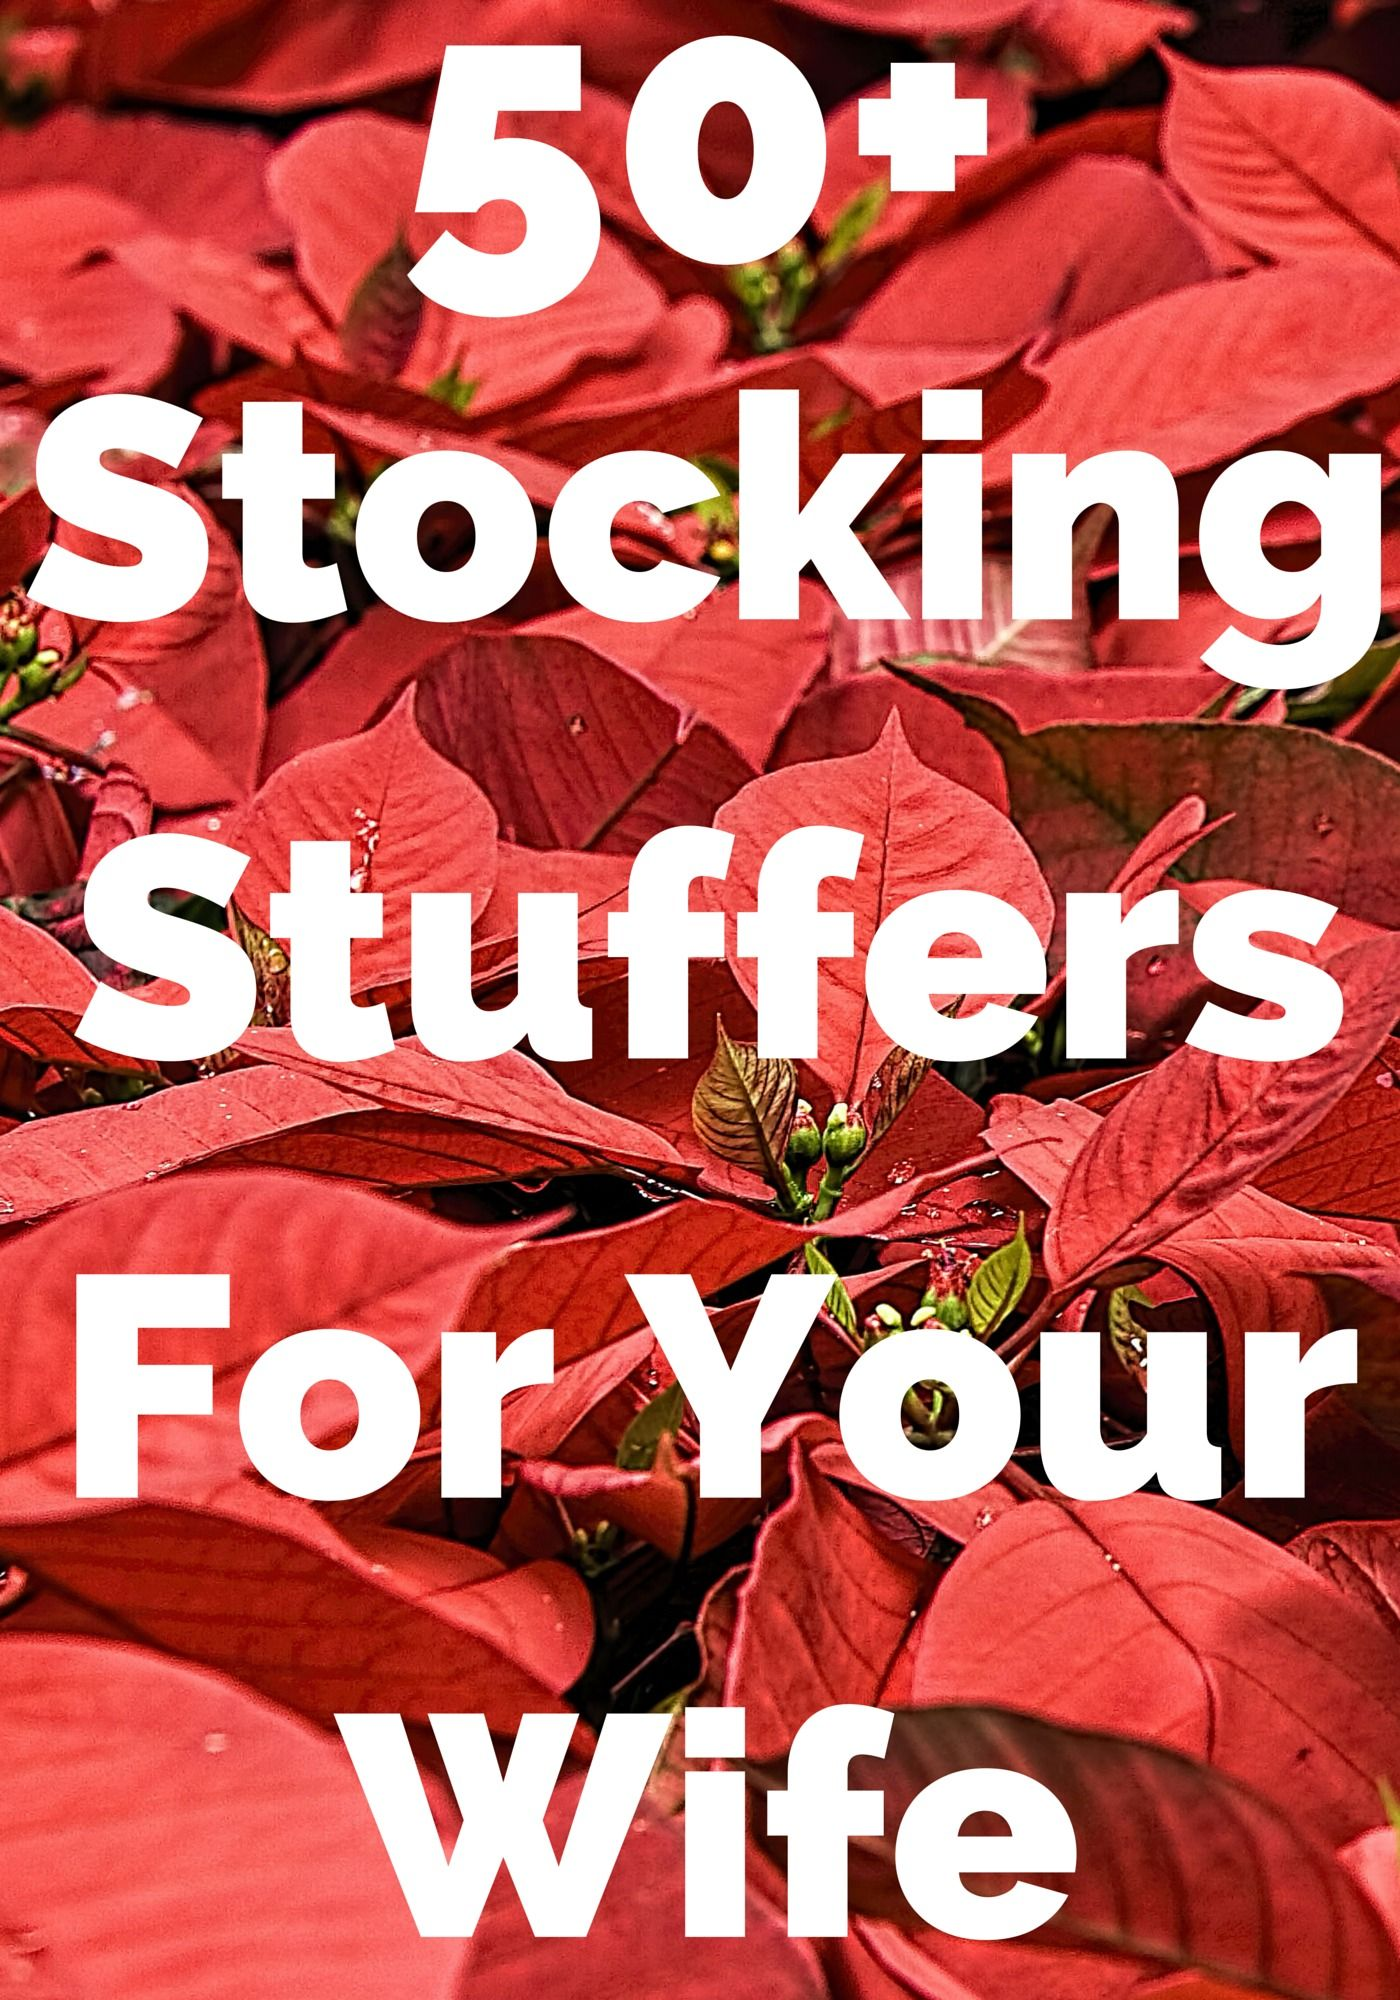 Find The Best Stocking Stuffers For Your Wife Today She Will Love To See These Awesome Gifts In Her Stocking Surprise Her With Your Ideas